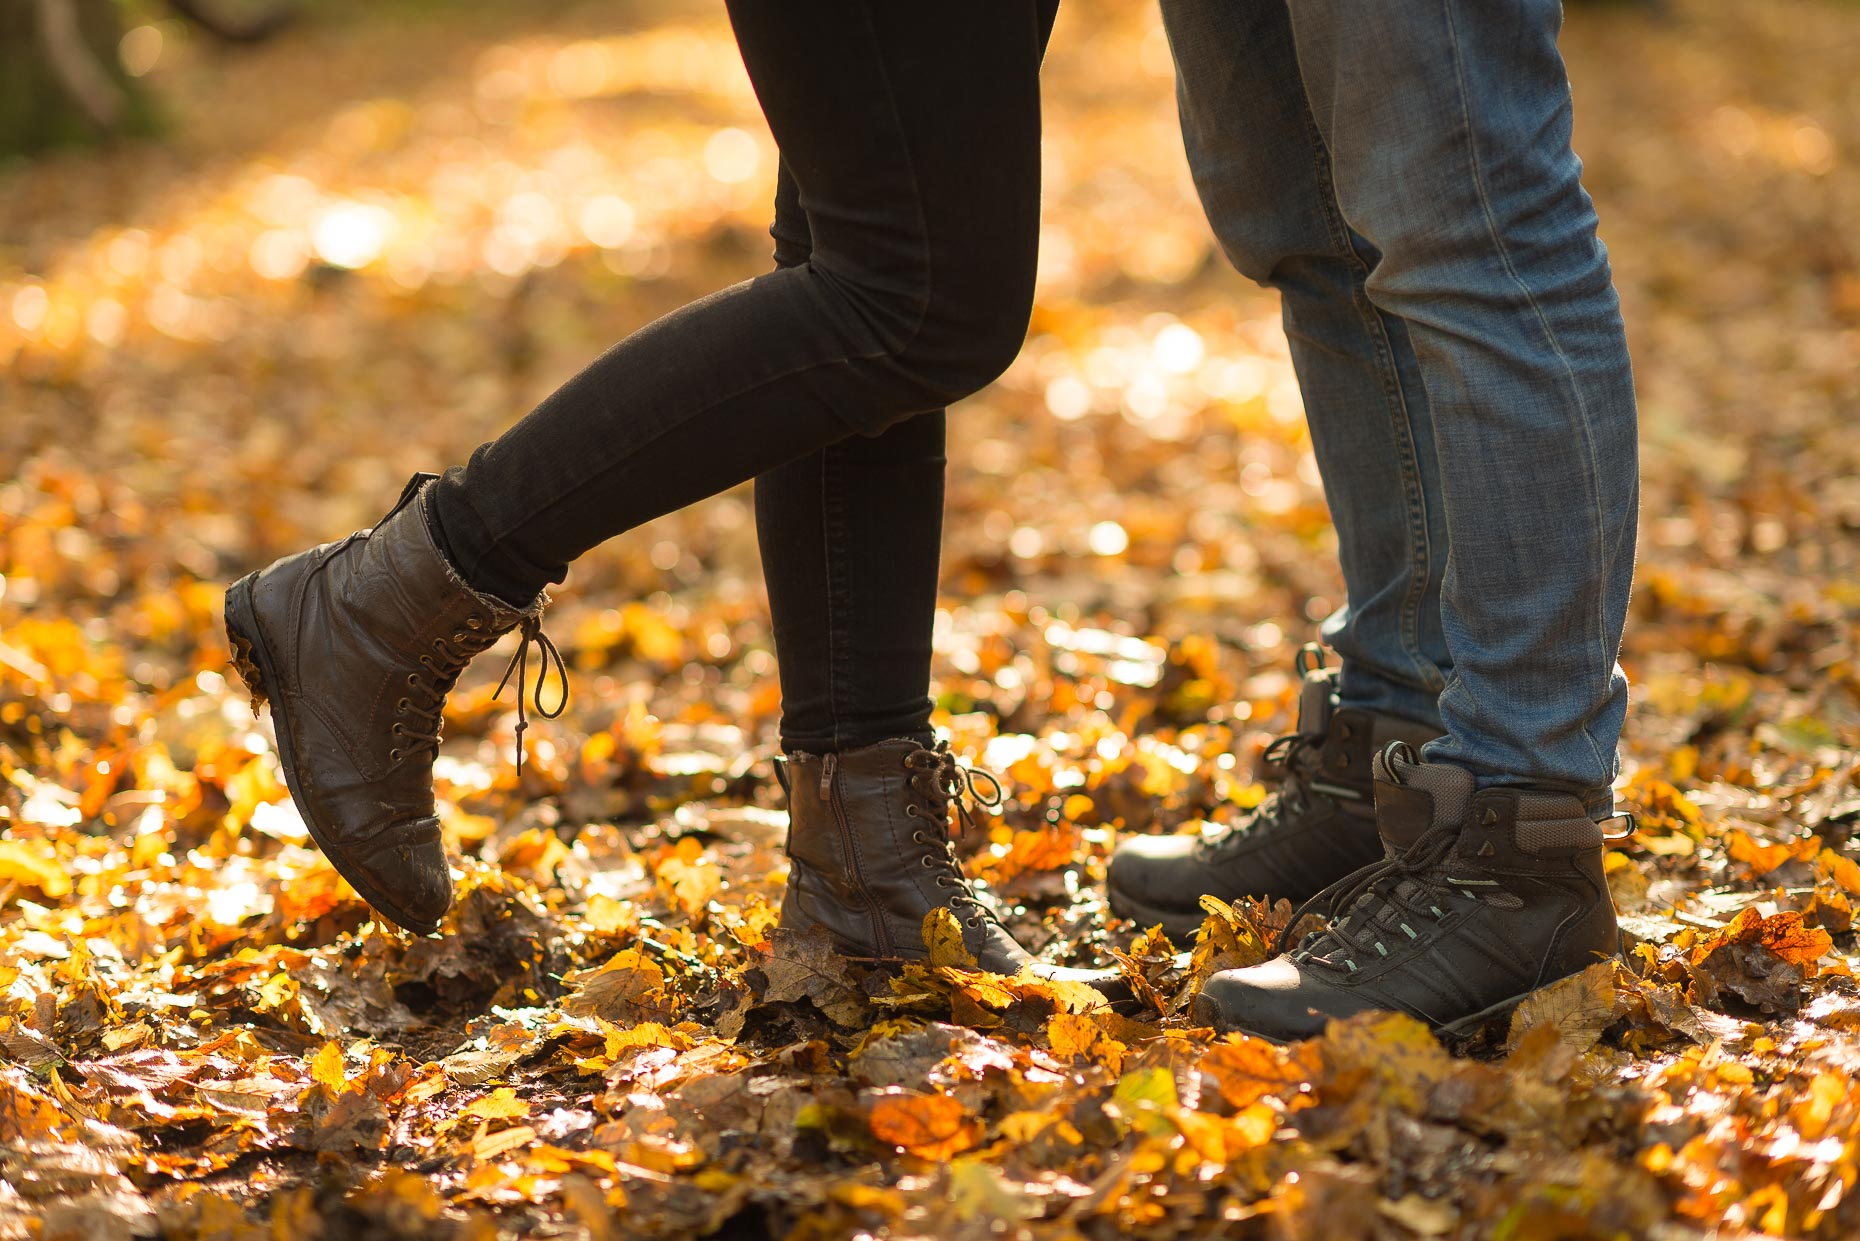 close-up-detail-boots-romance-together-couple-hugging-autumn-leaves-epping-forest-london-lifestyle-photography-23